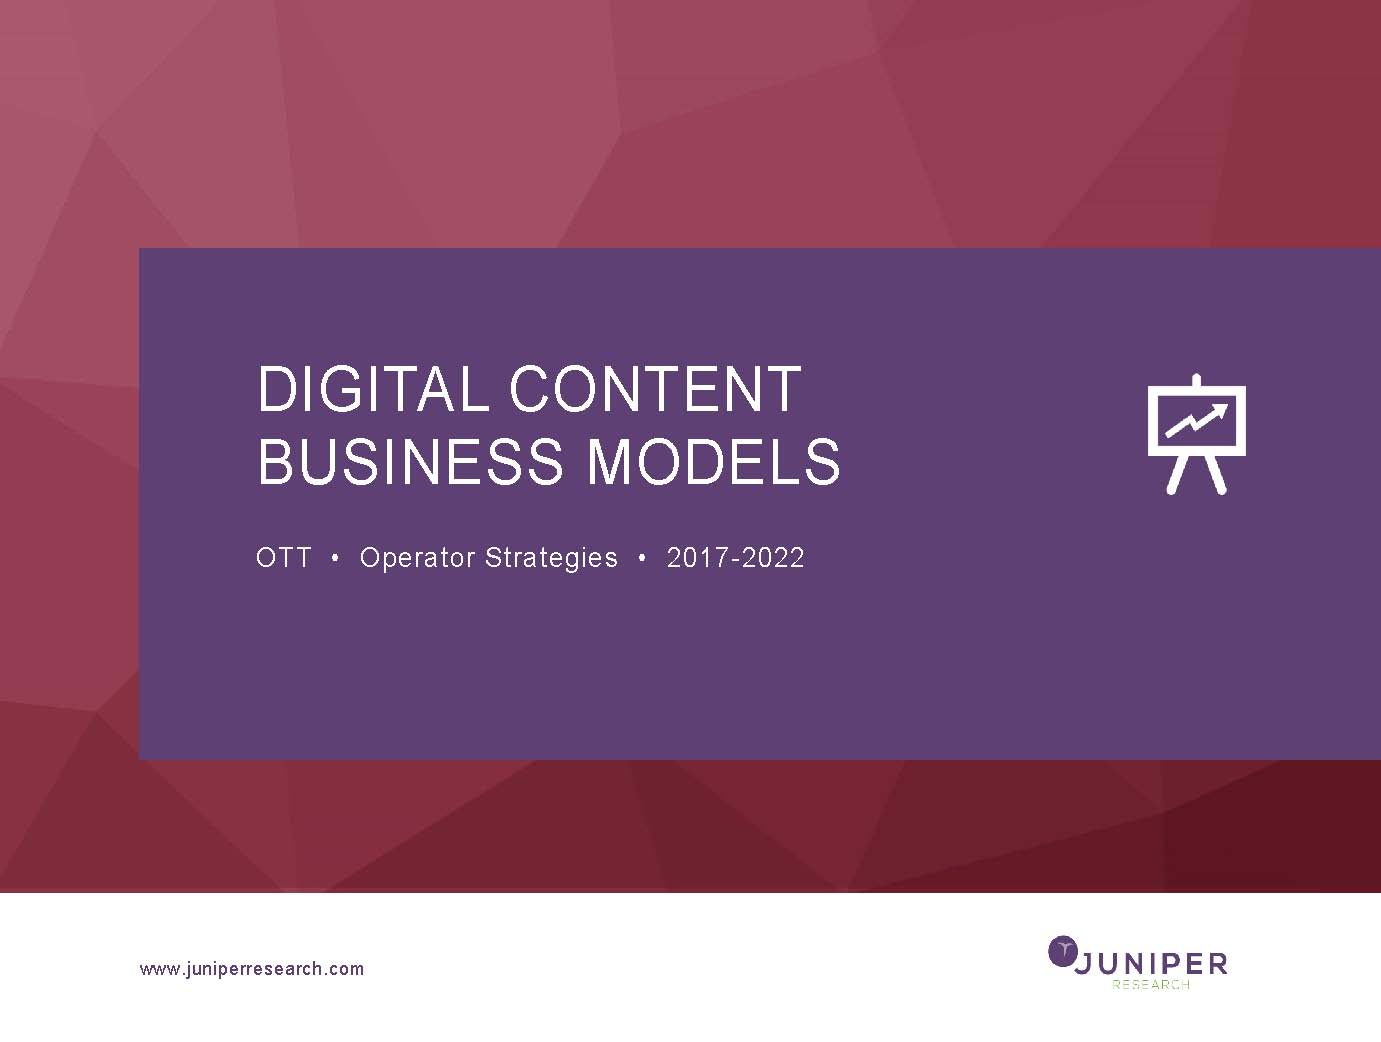 Digital Content Business Models: OTT & Operator Strategies 2017-2022